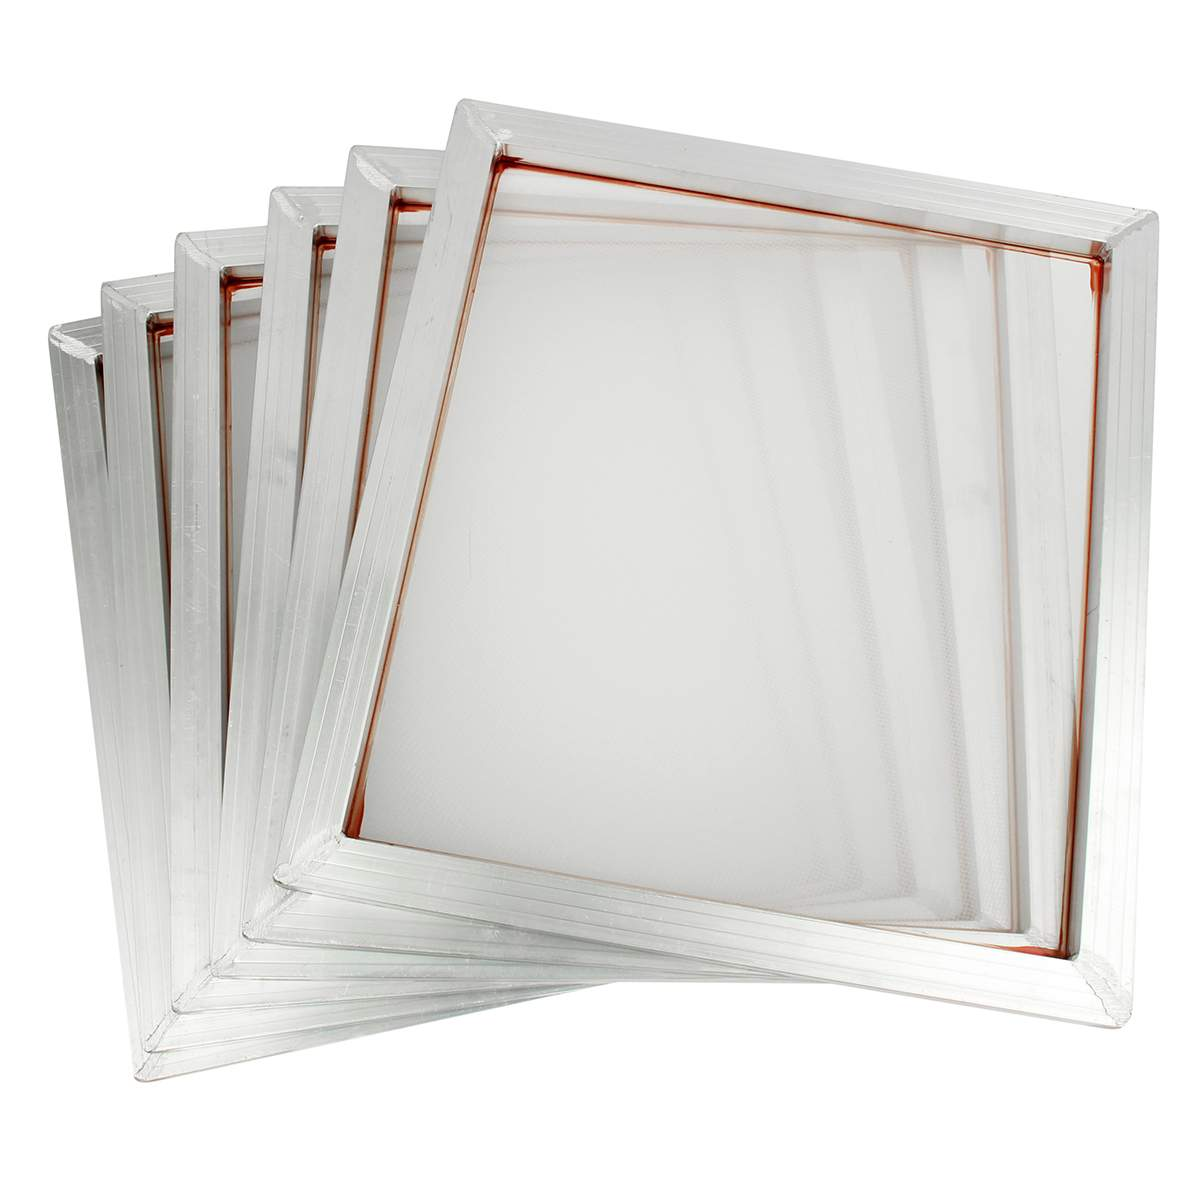 6Pcs 45x50cm Aluminum Frame Silk Screen Printing Press Frame 110 White Mesh Count For High-precision Printed Circuit Boards